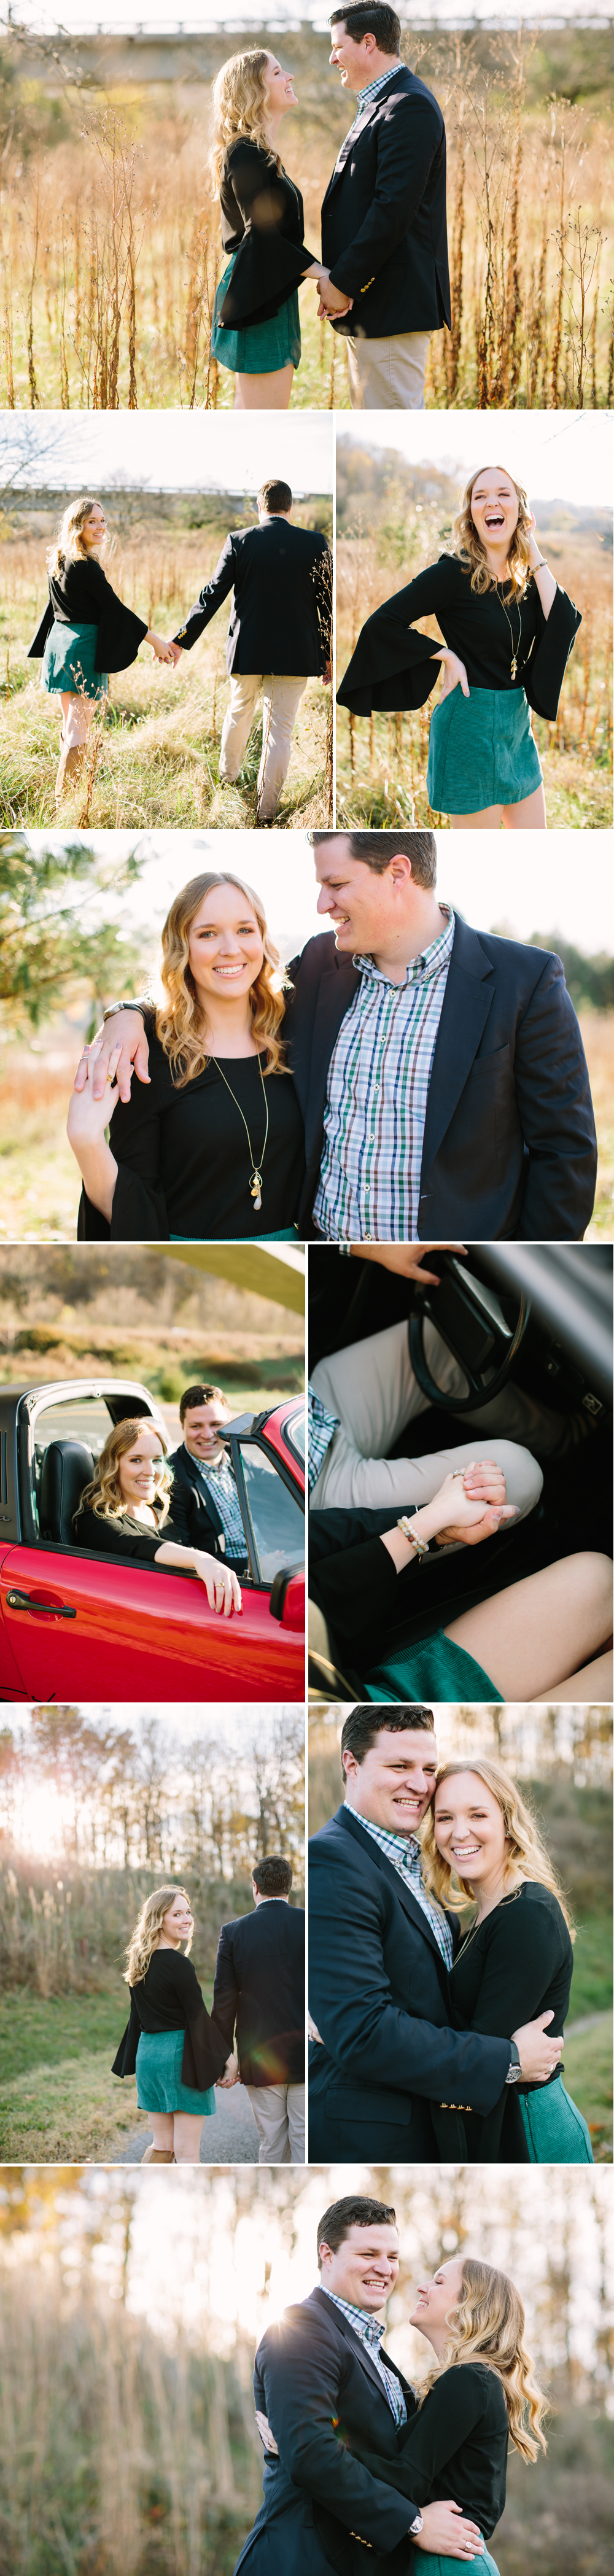 Nashville_Engagement_Photography_1.jpg